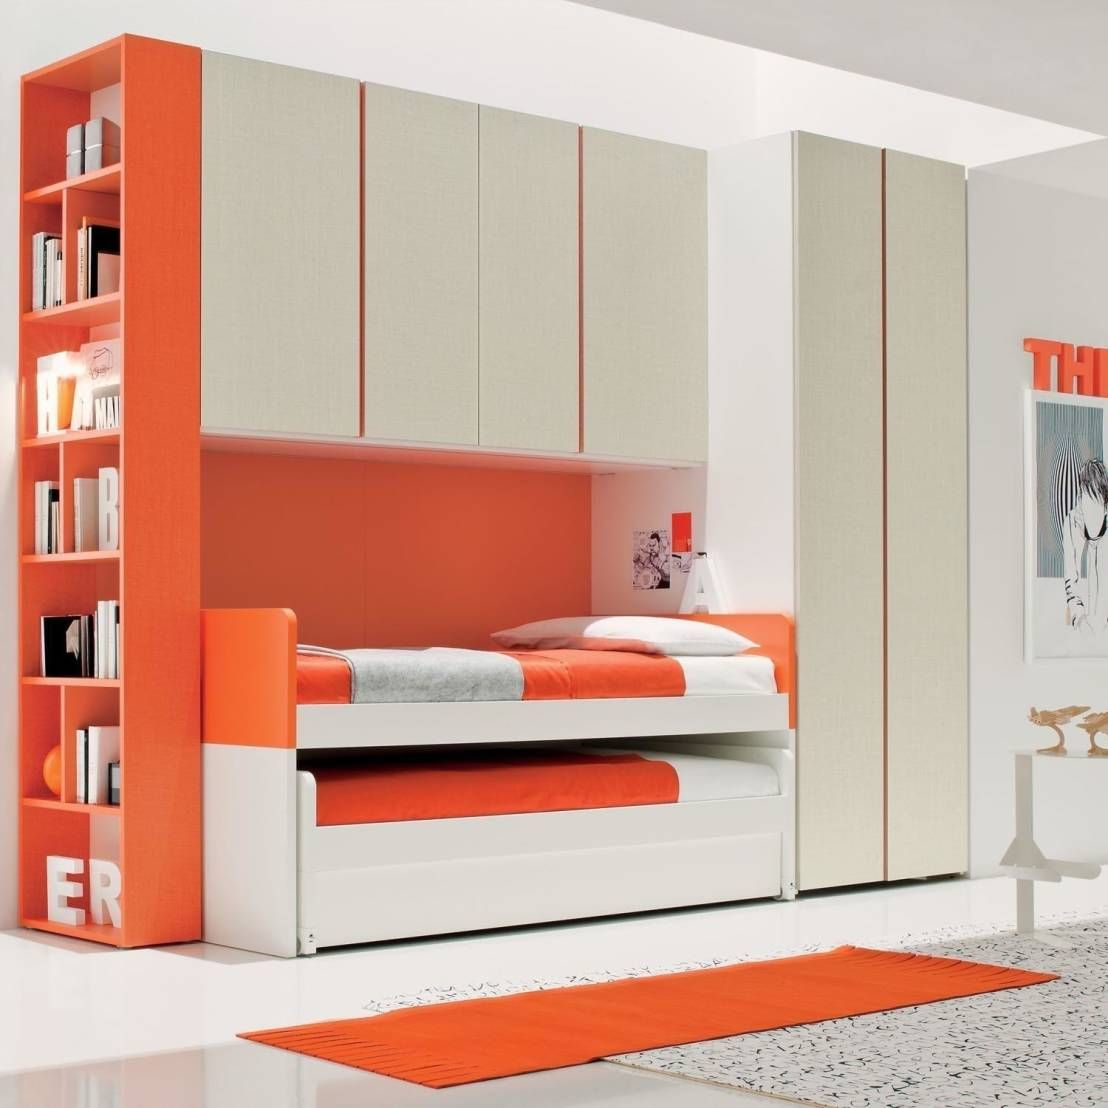 Stylish Single Beds stylish ideas for beds and bookshelves | single bunk bed, bedrooms